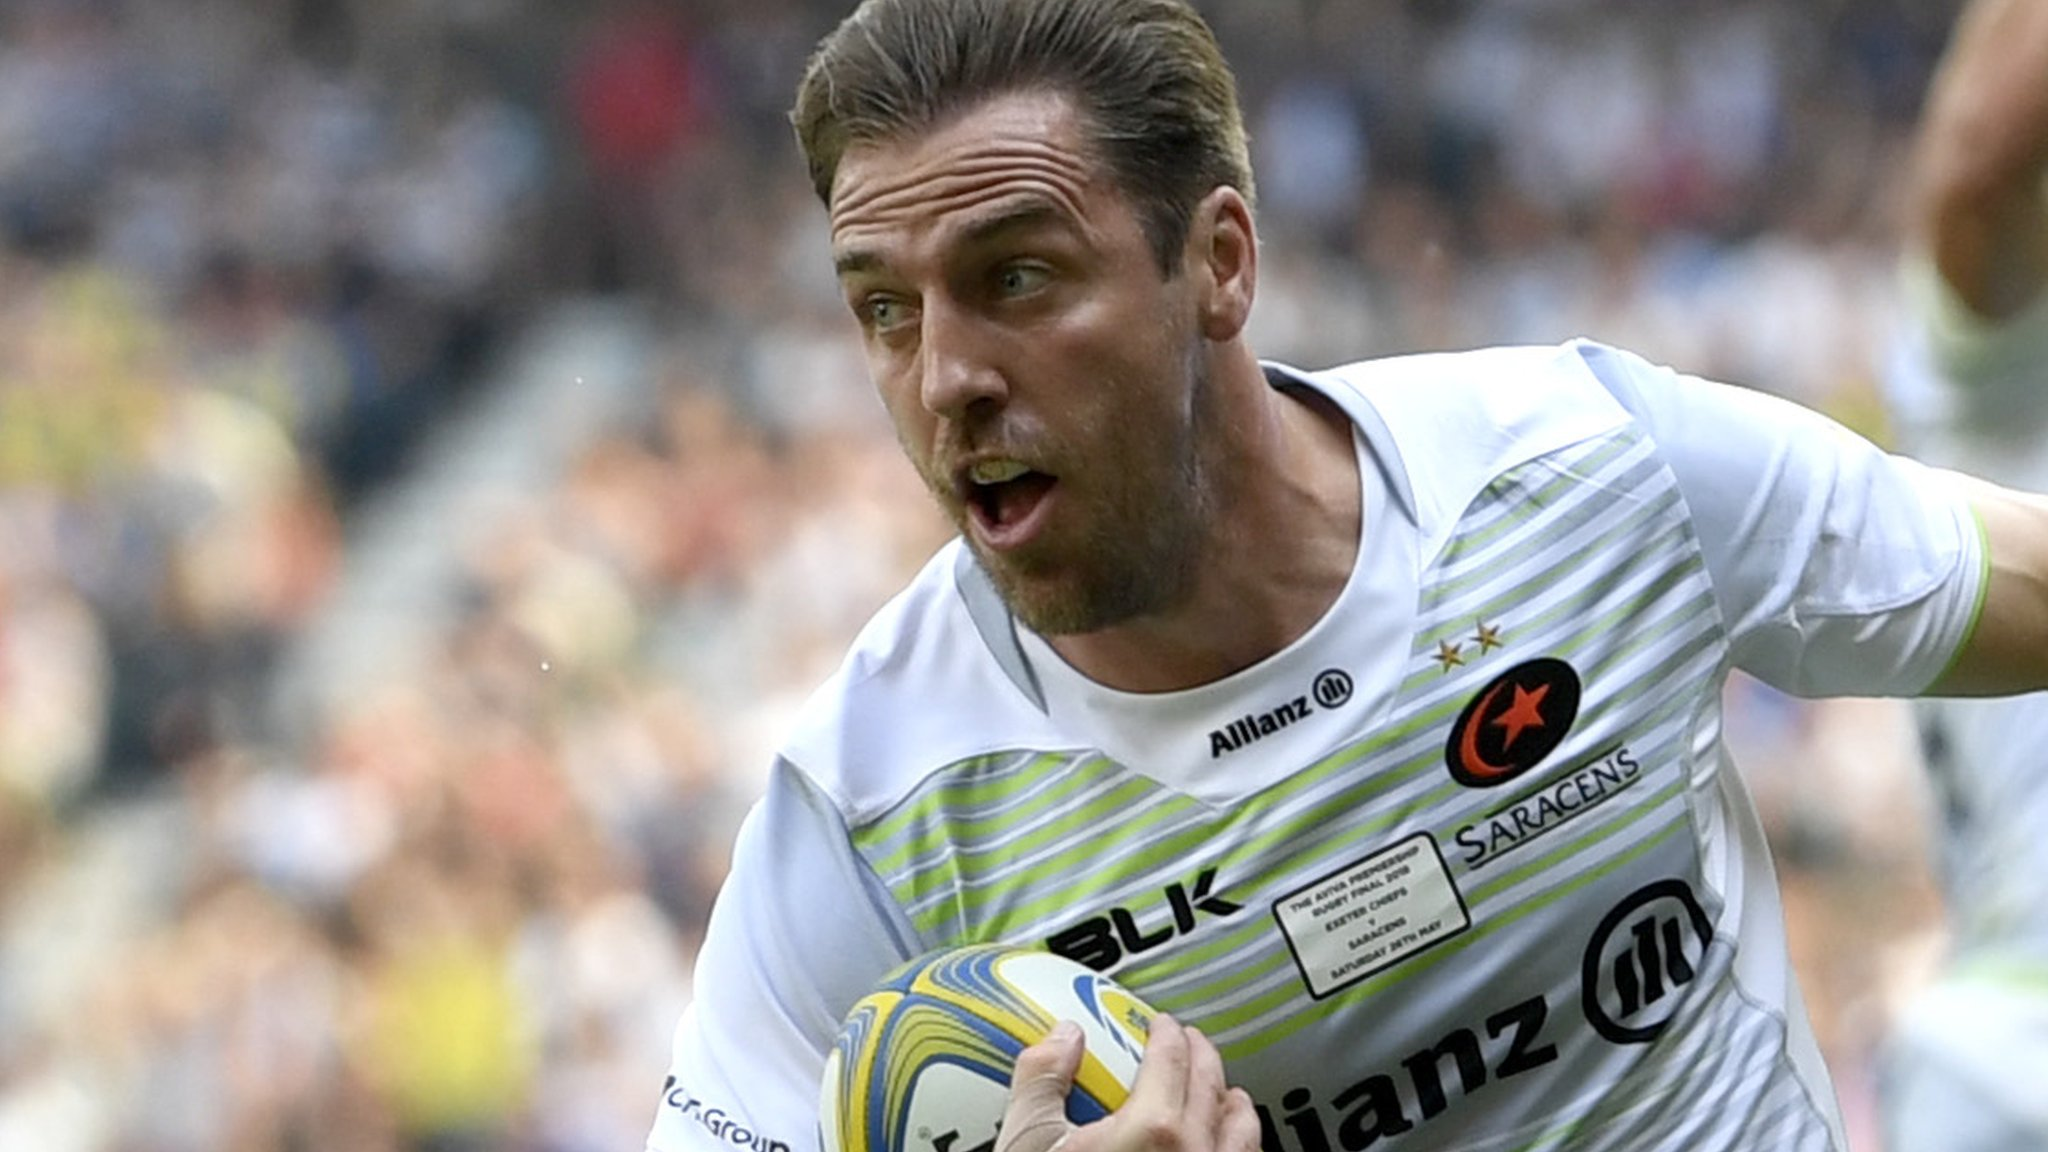 Premiership: Saracens v Sale Sharks